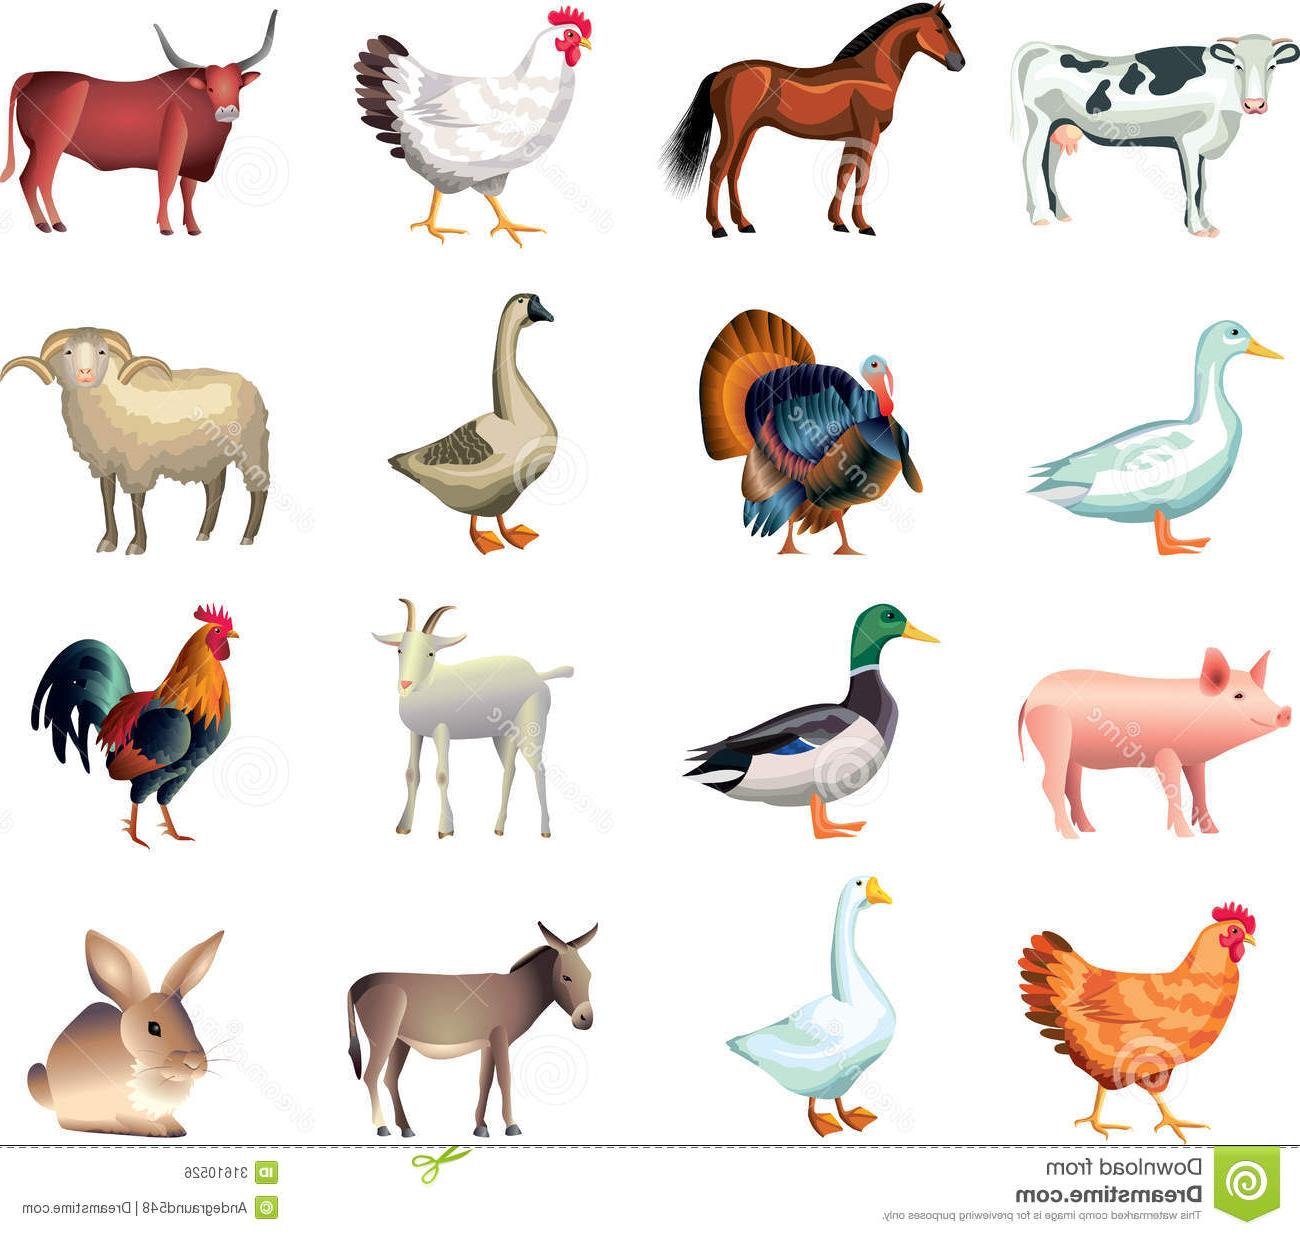 Animals in the barn clipart free Top Baby Barn Animals Clip Art Images » Free Vector Art, Images ... free